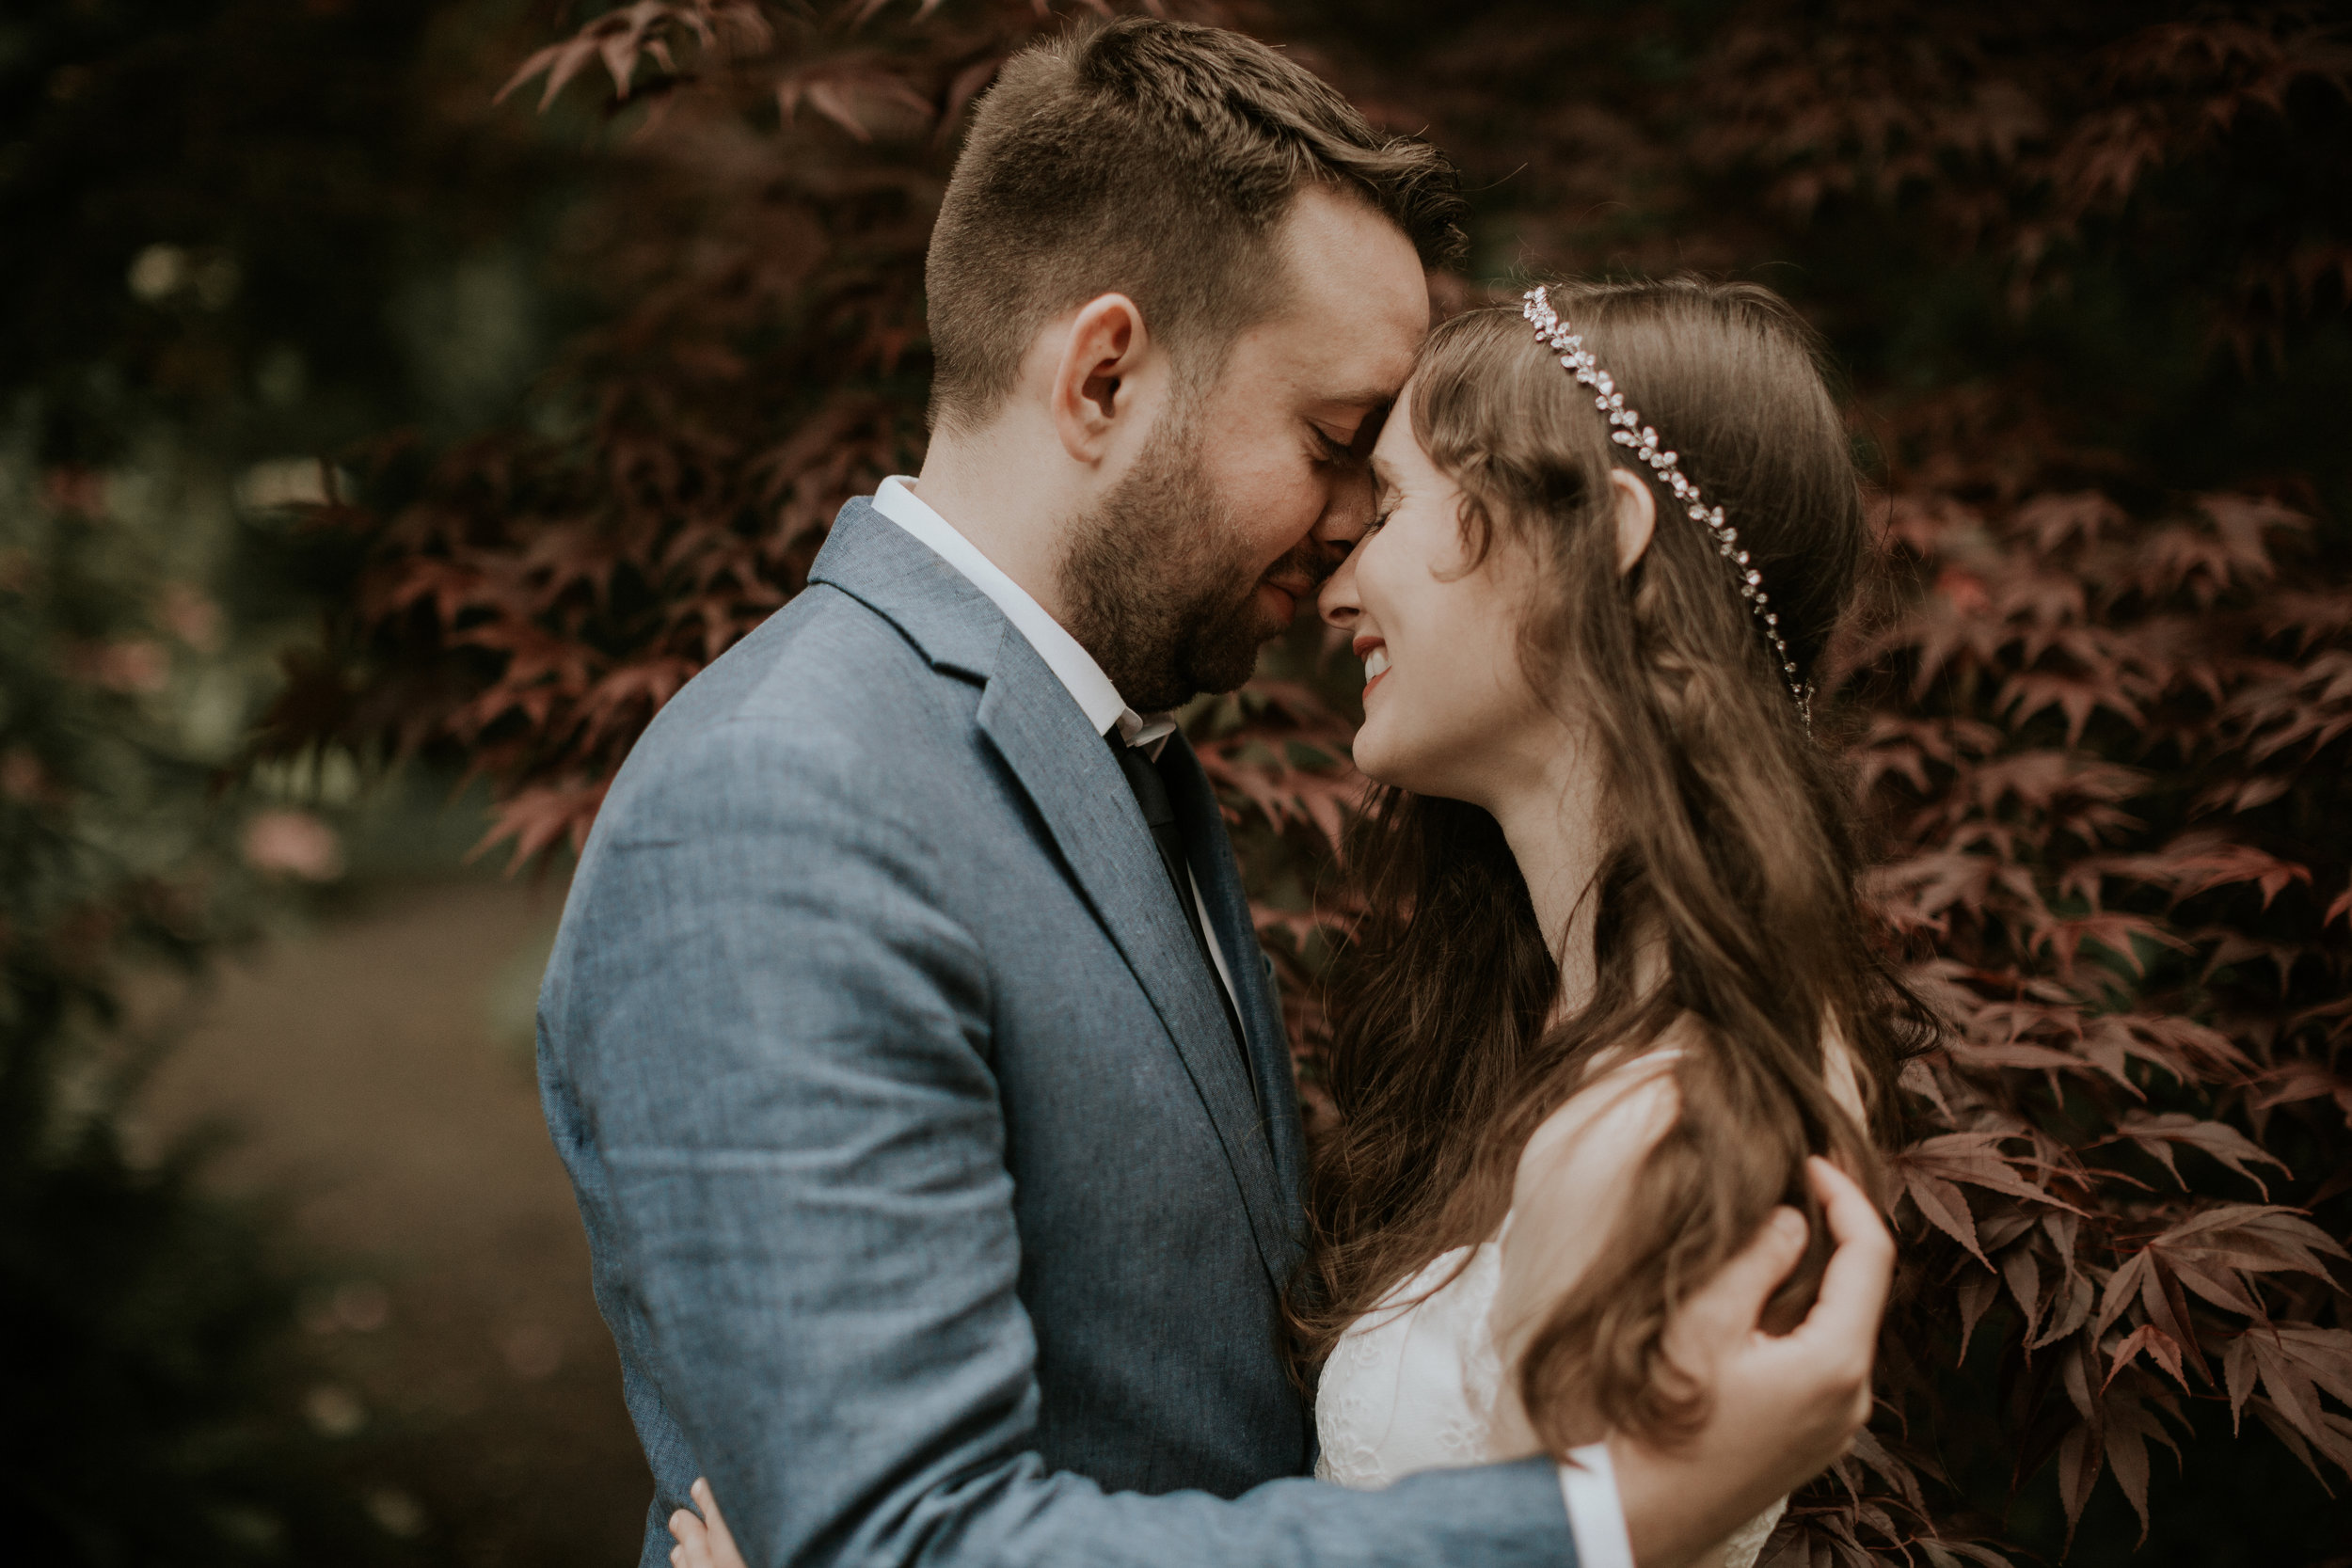 PNW-elopement-wedding-engagement-olympic national park-port angeles-hurricane ridge-lake crescent-kayla dawn photography- photographer-photography-kayladawnphoto-122.jpg